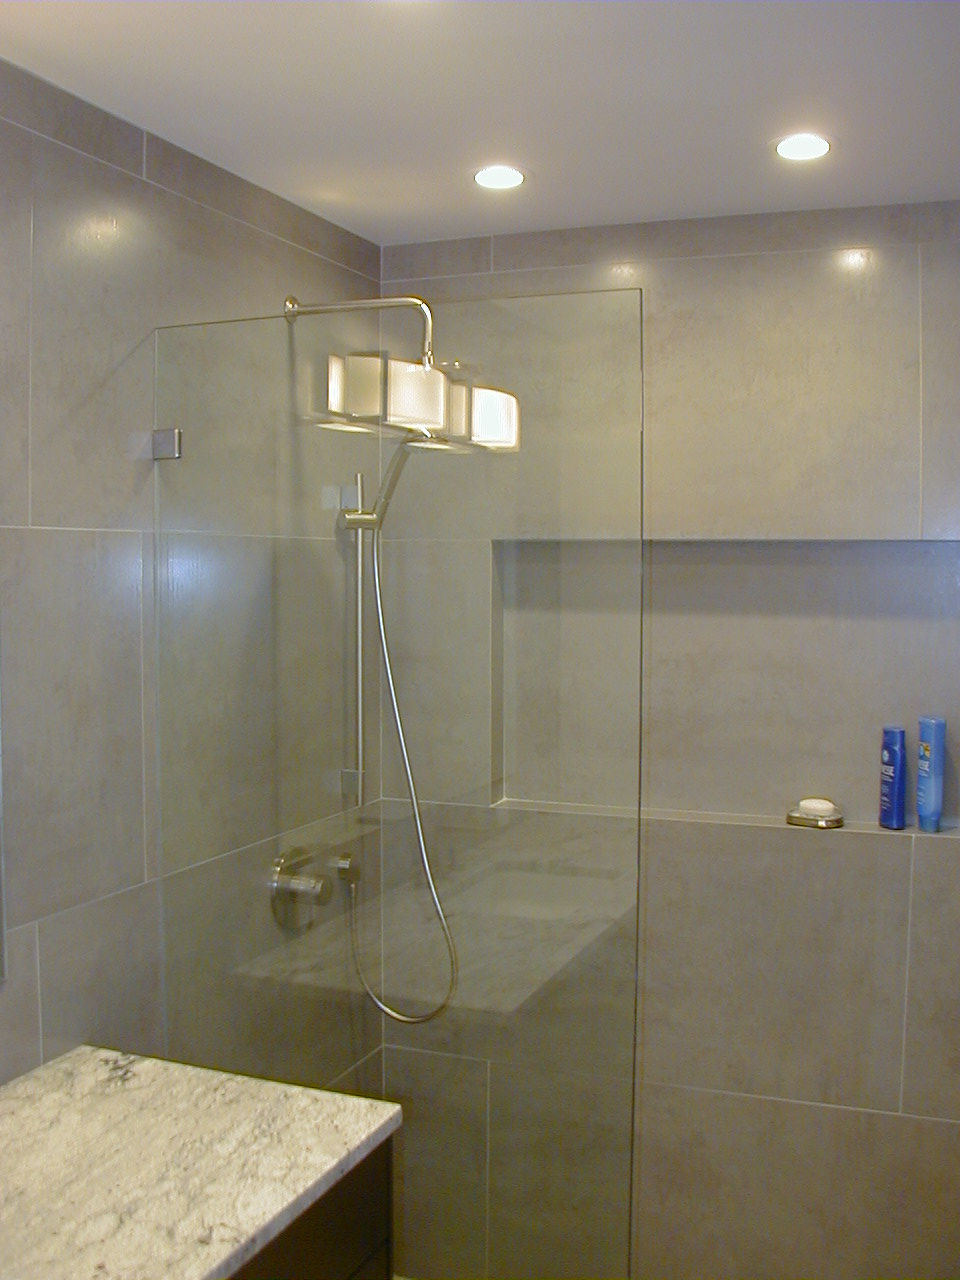 Bathroom Remodel in Rohnert Park, CA.